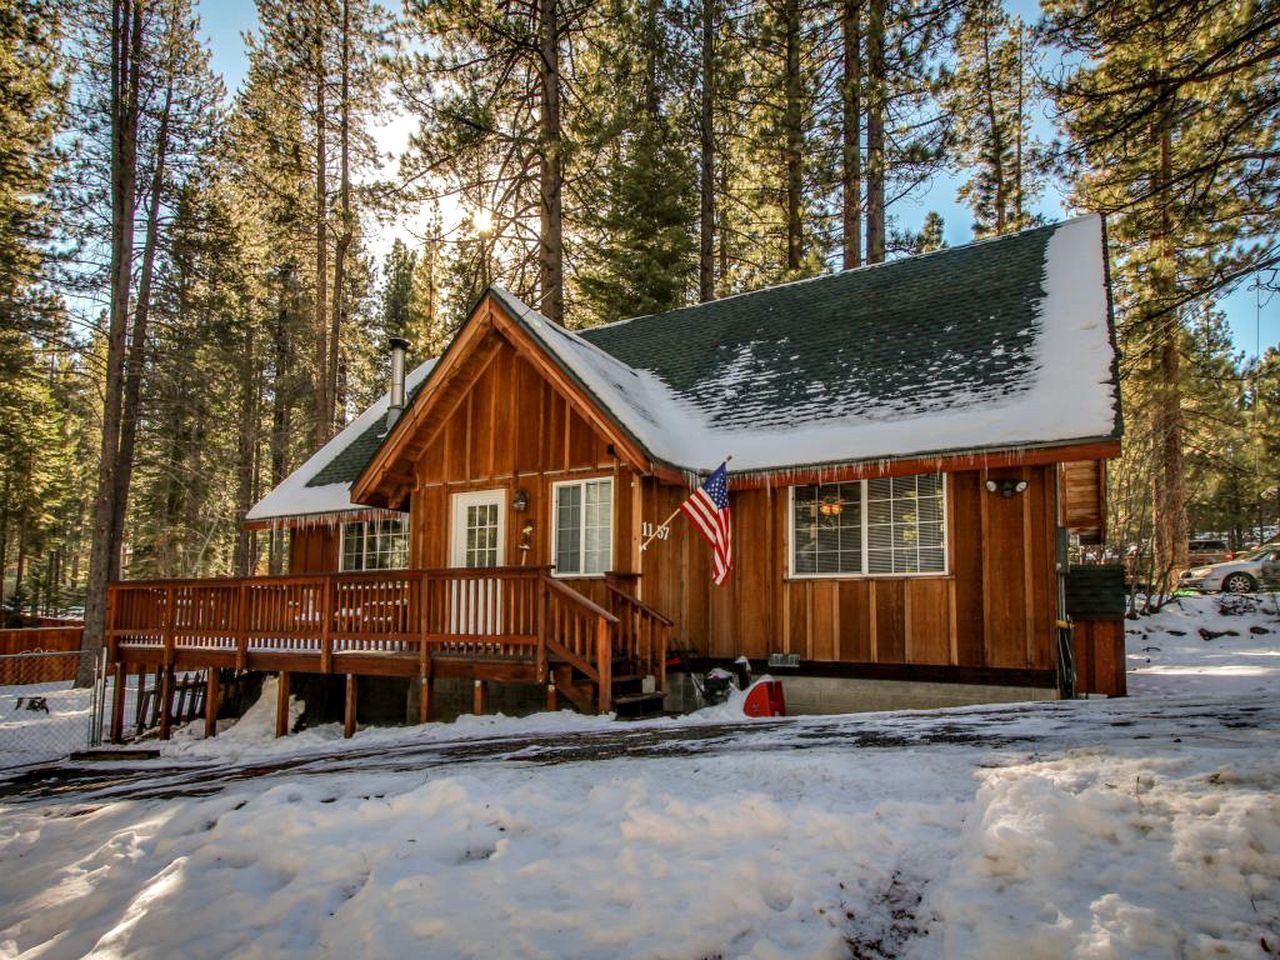 Cabins (South Lake Tahoe, California, United States)